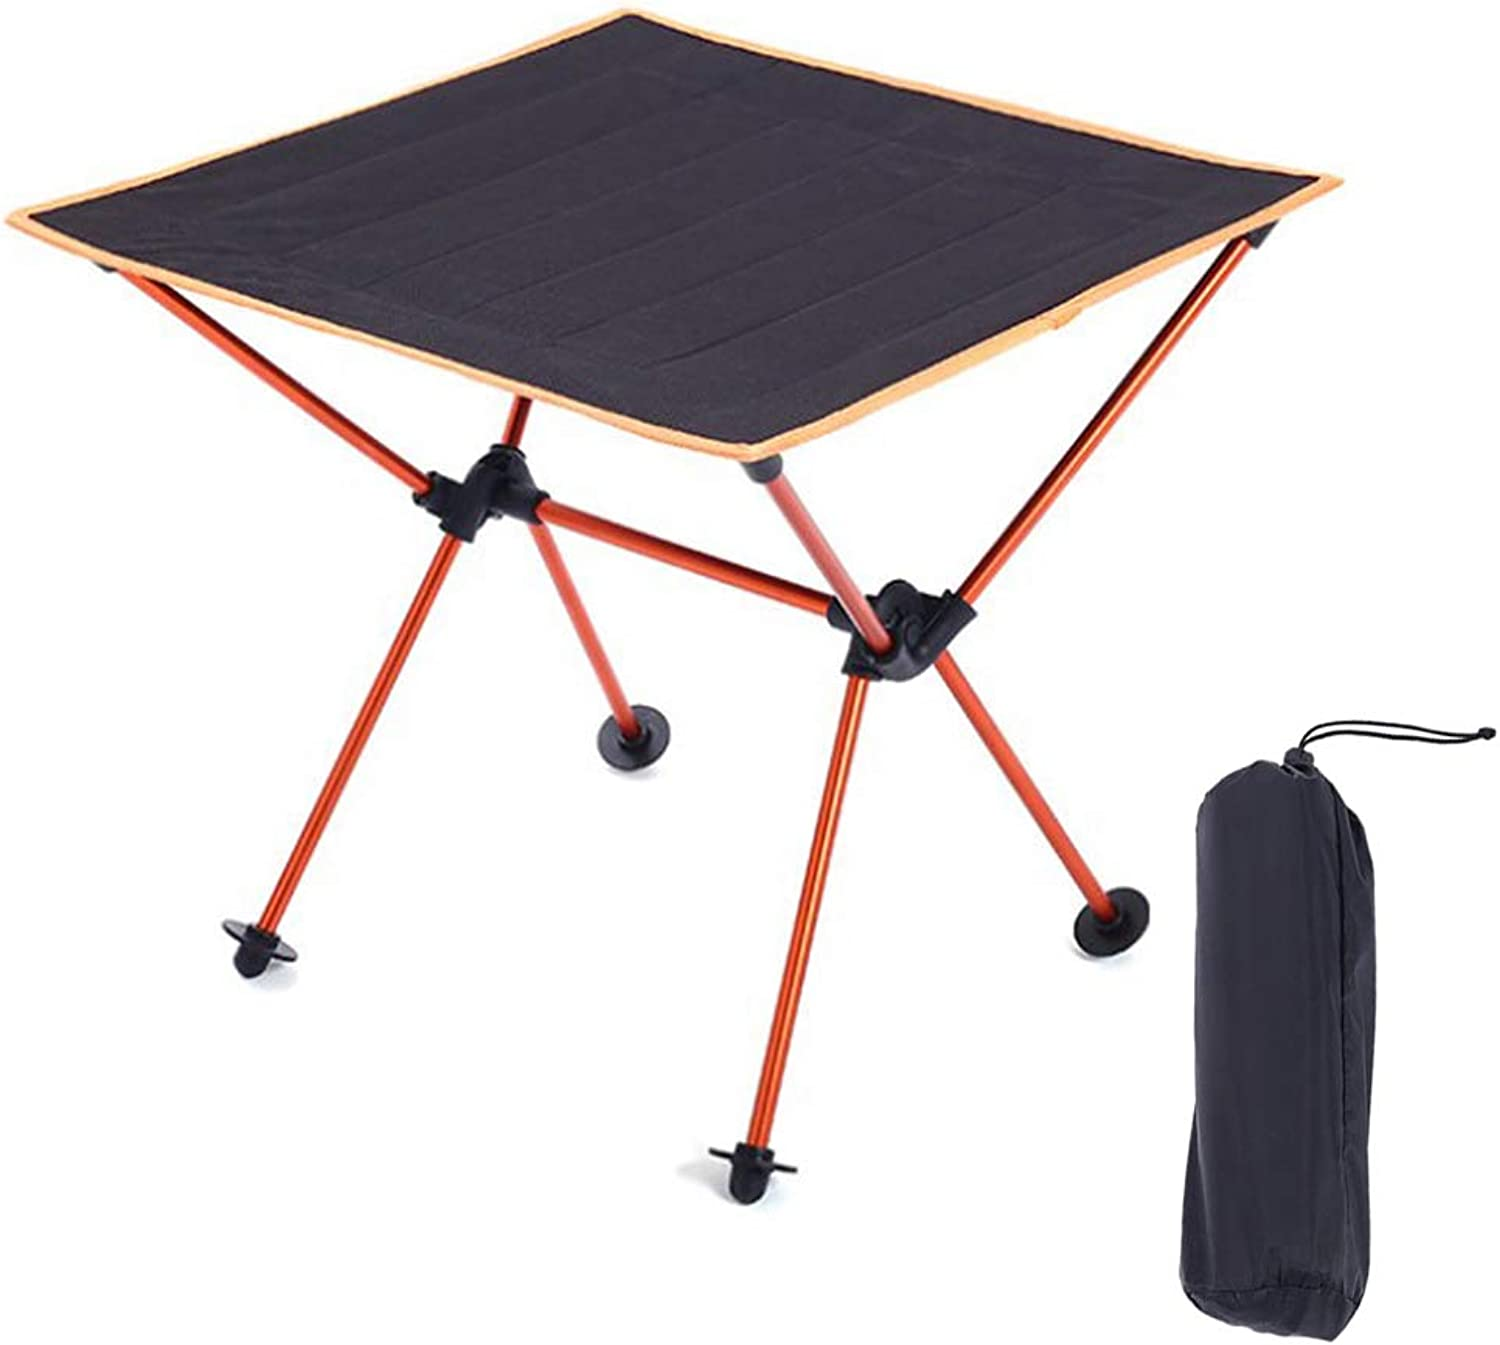 Zaptex Outdoor Folding Table Portable Lightweight Camping Hiking Picnic Beach Table Supplies